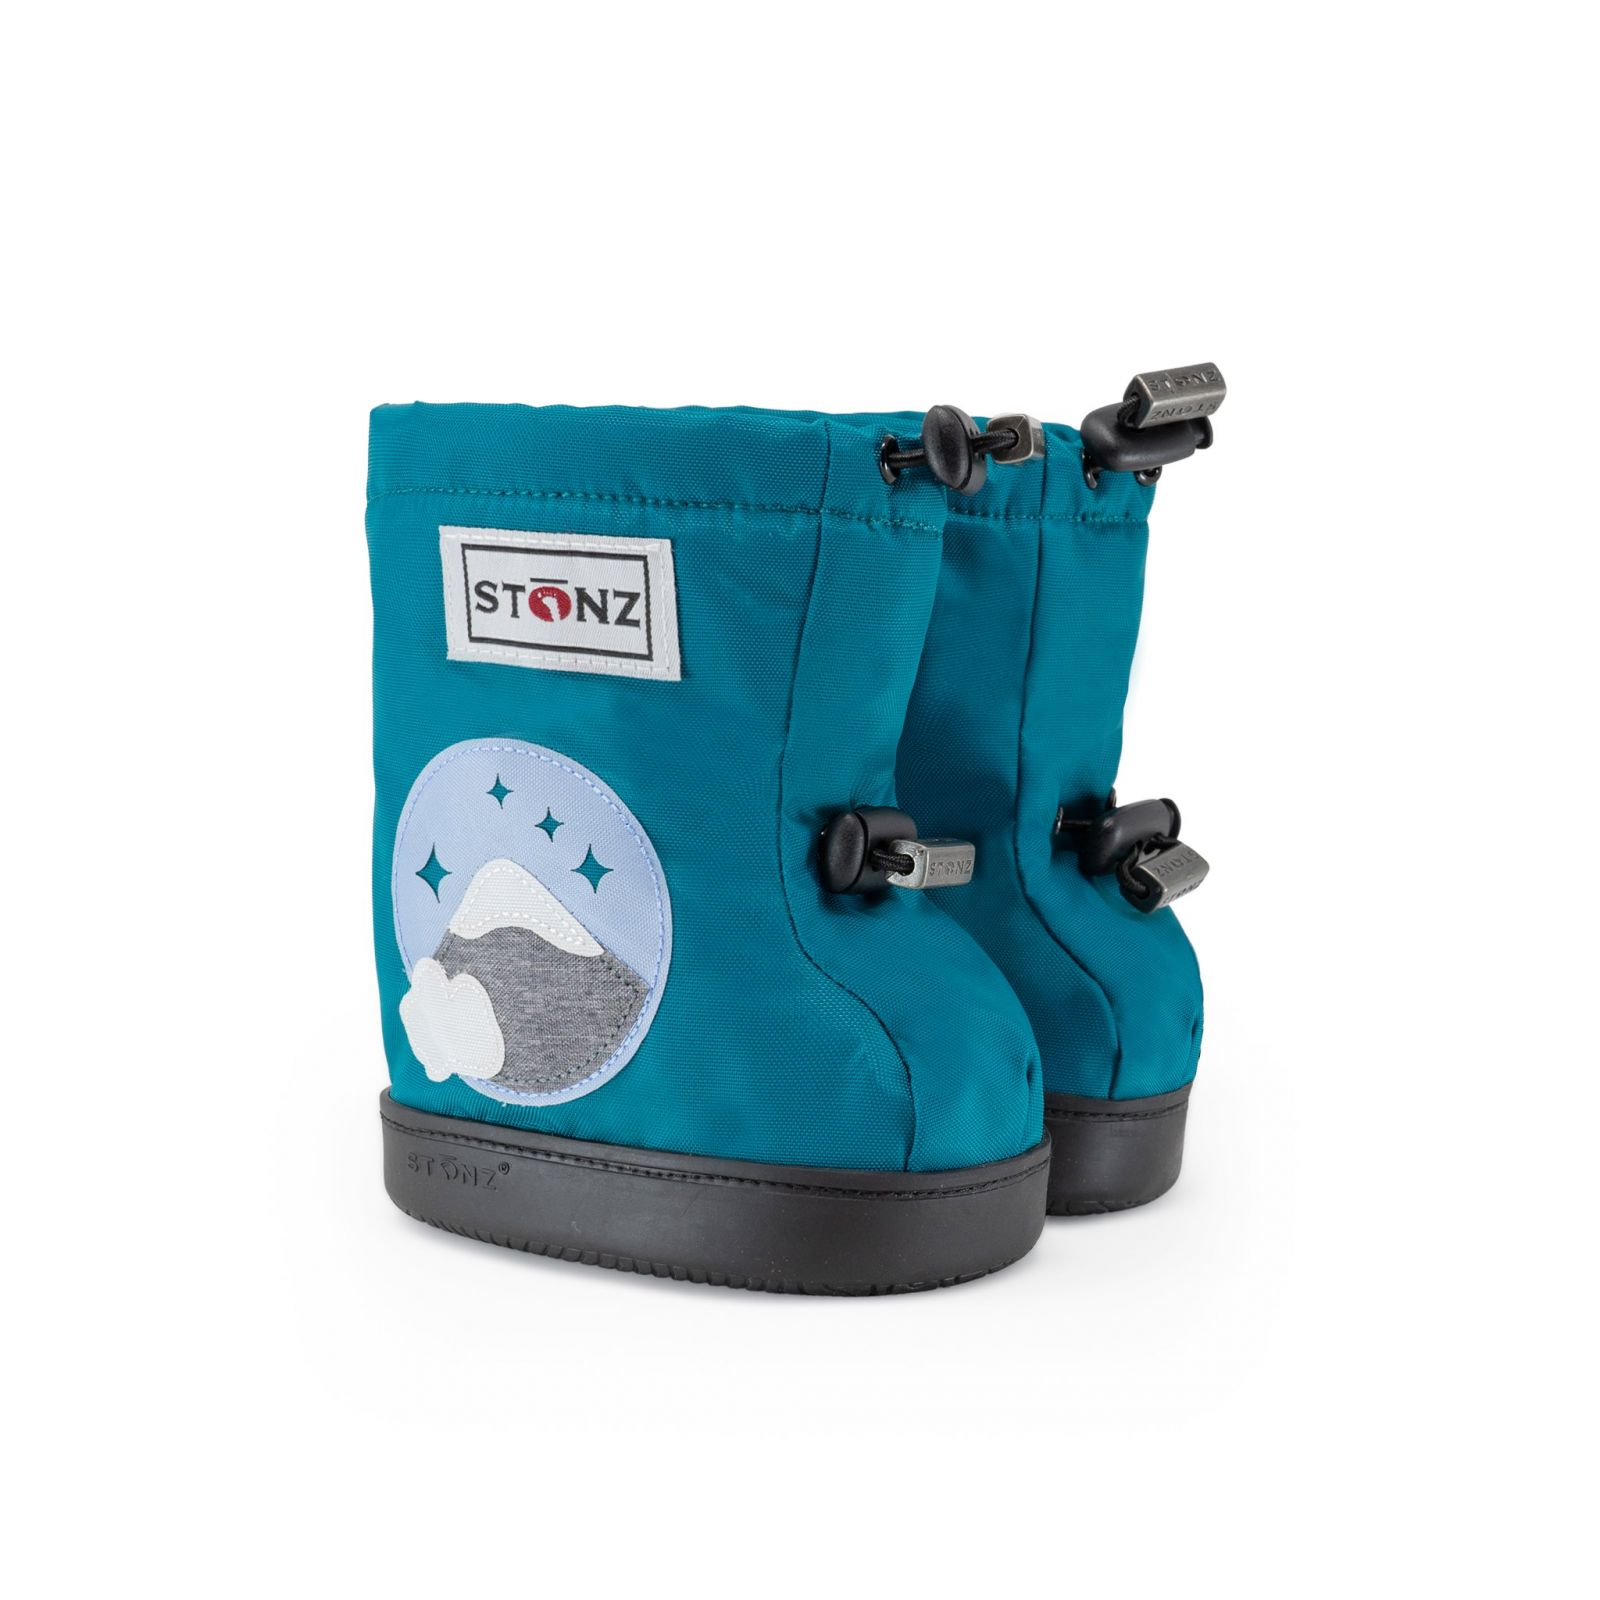 Barefoot Barefoot boty Stonz Toddler Booties - Mountain - Tea bosá